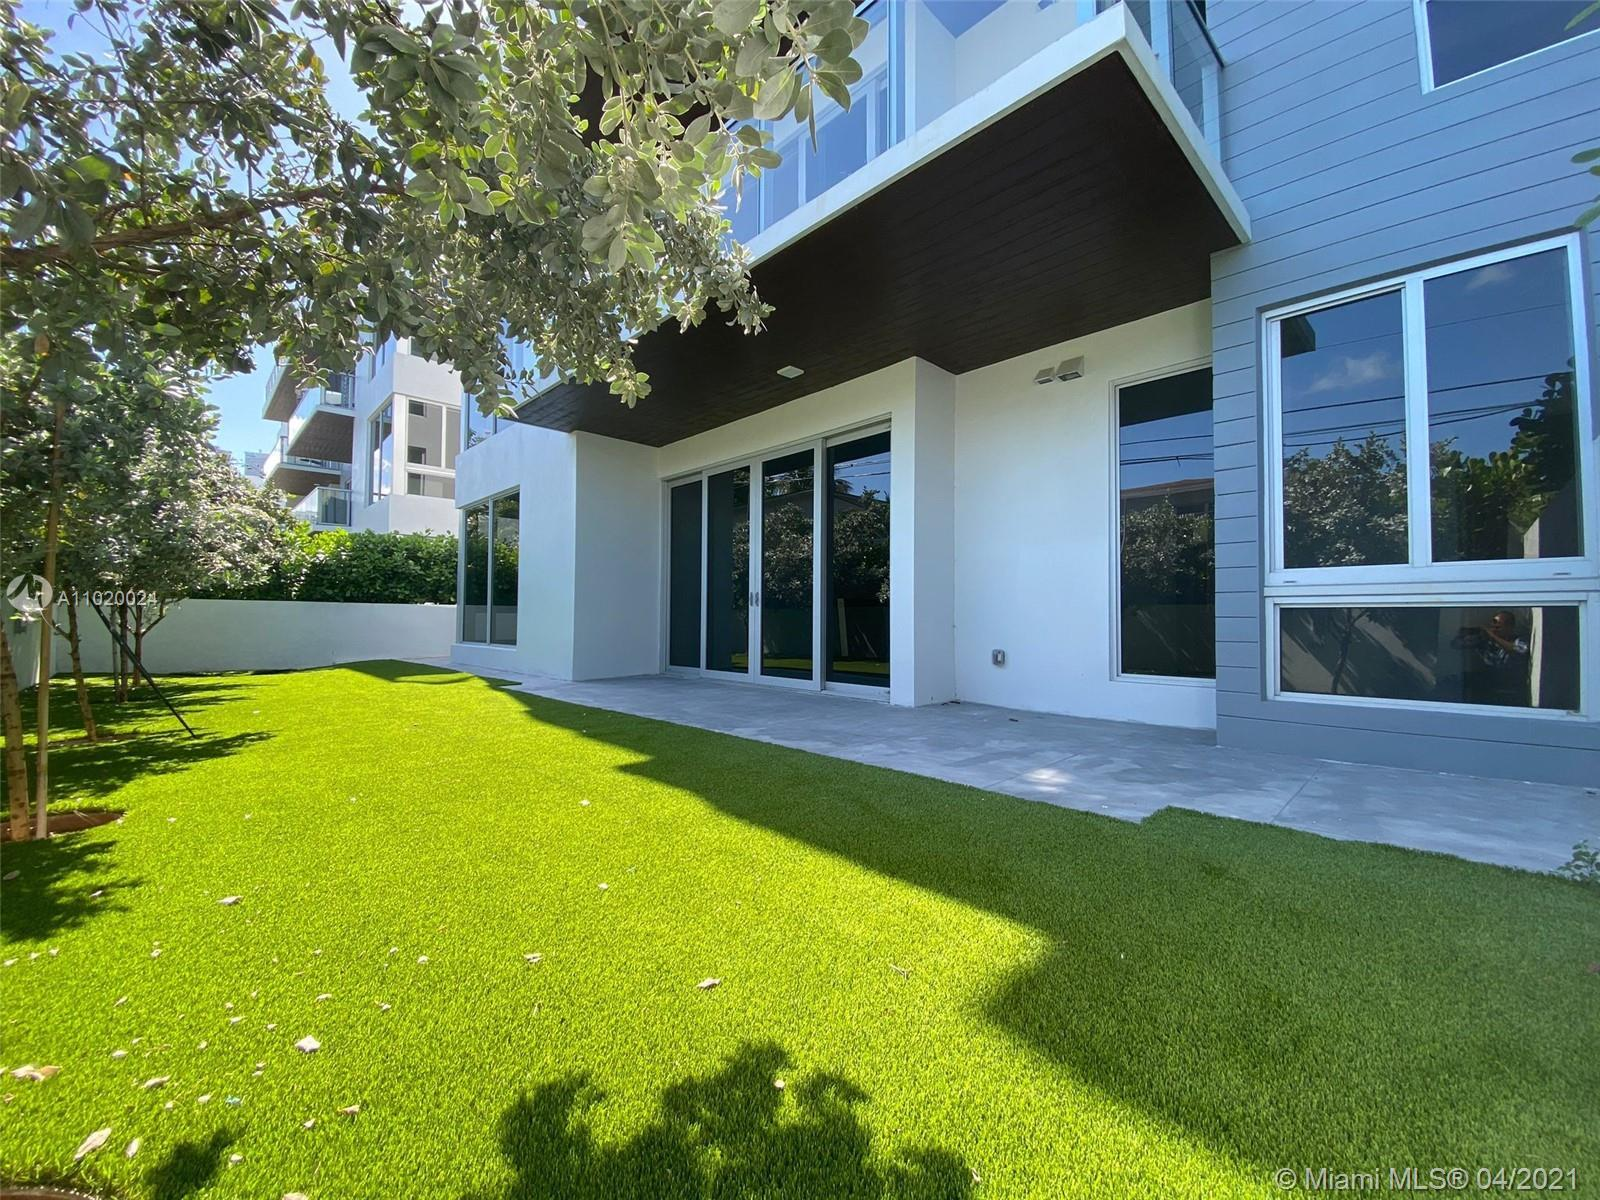 LAST DEVELOPER UNIT WITH PRIVATE BACKYARD: TOTAL AREA: 3,673 Sq.Ft. including Living Area: 2,161 Sq.